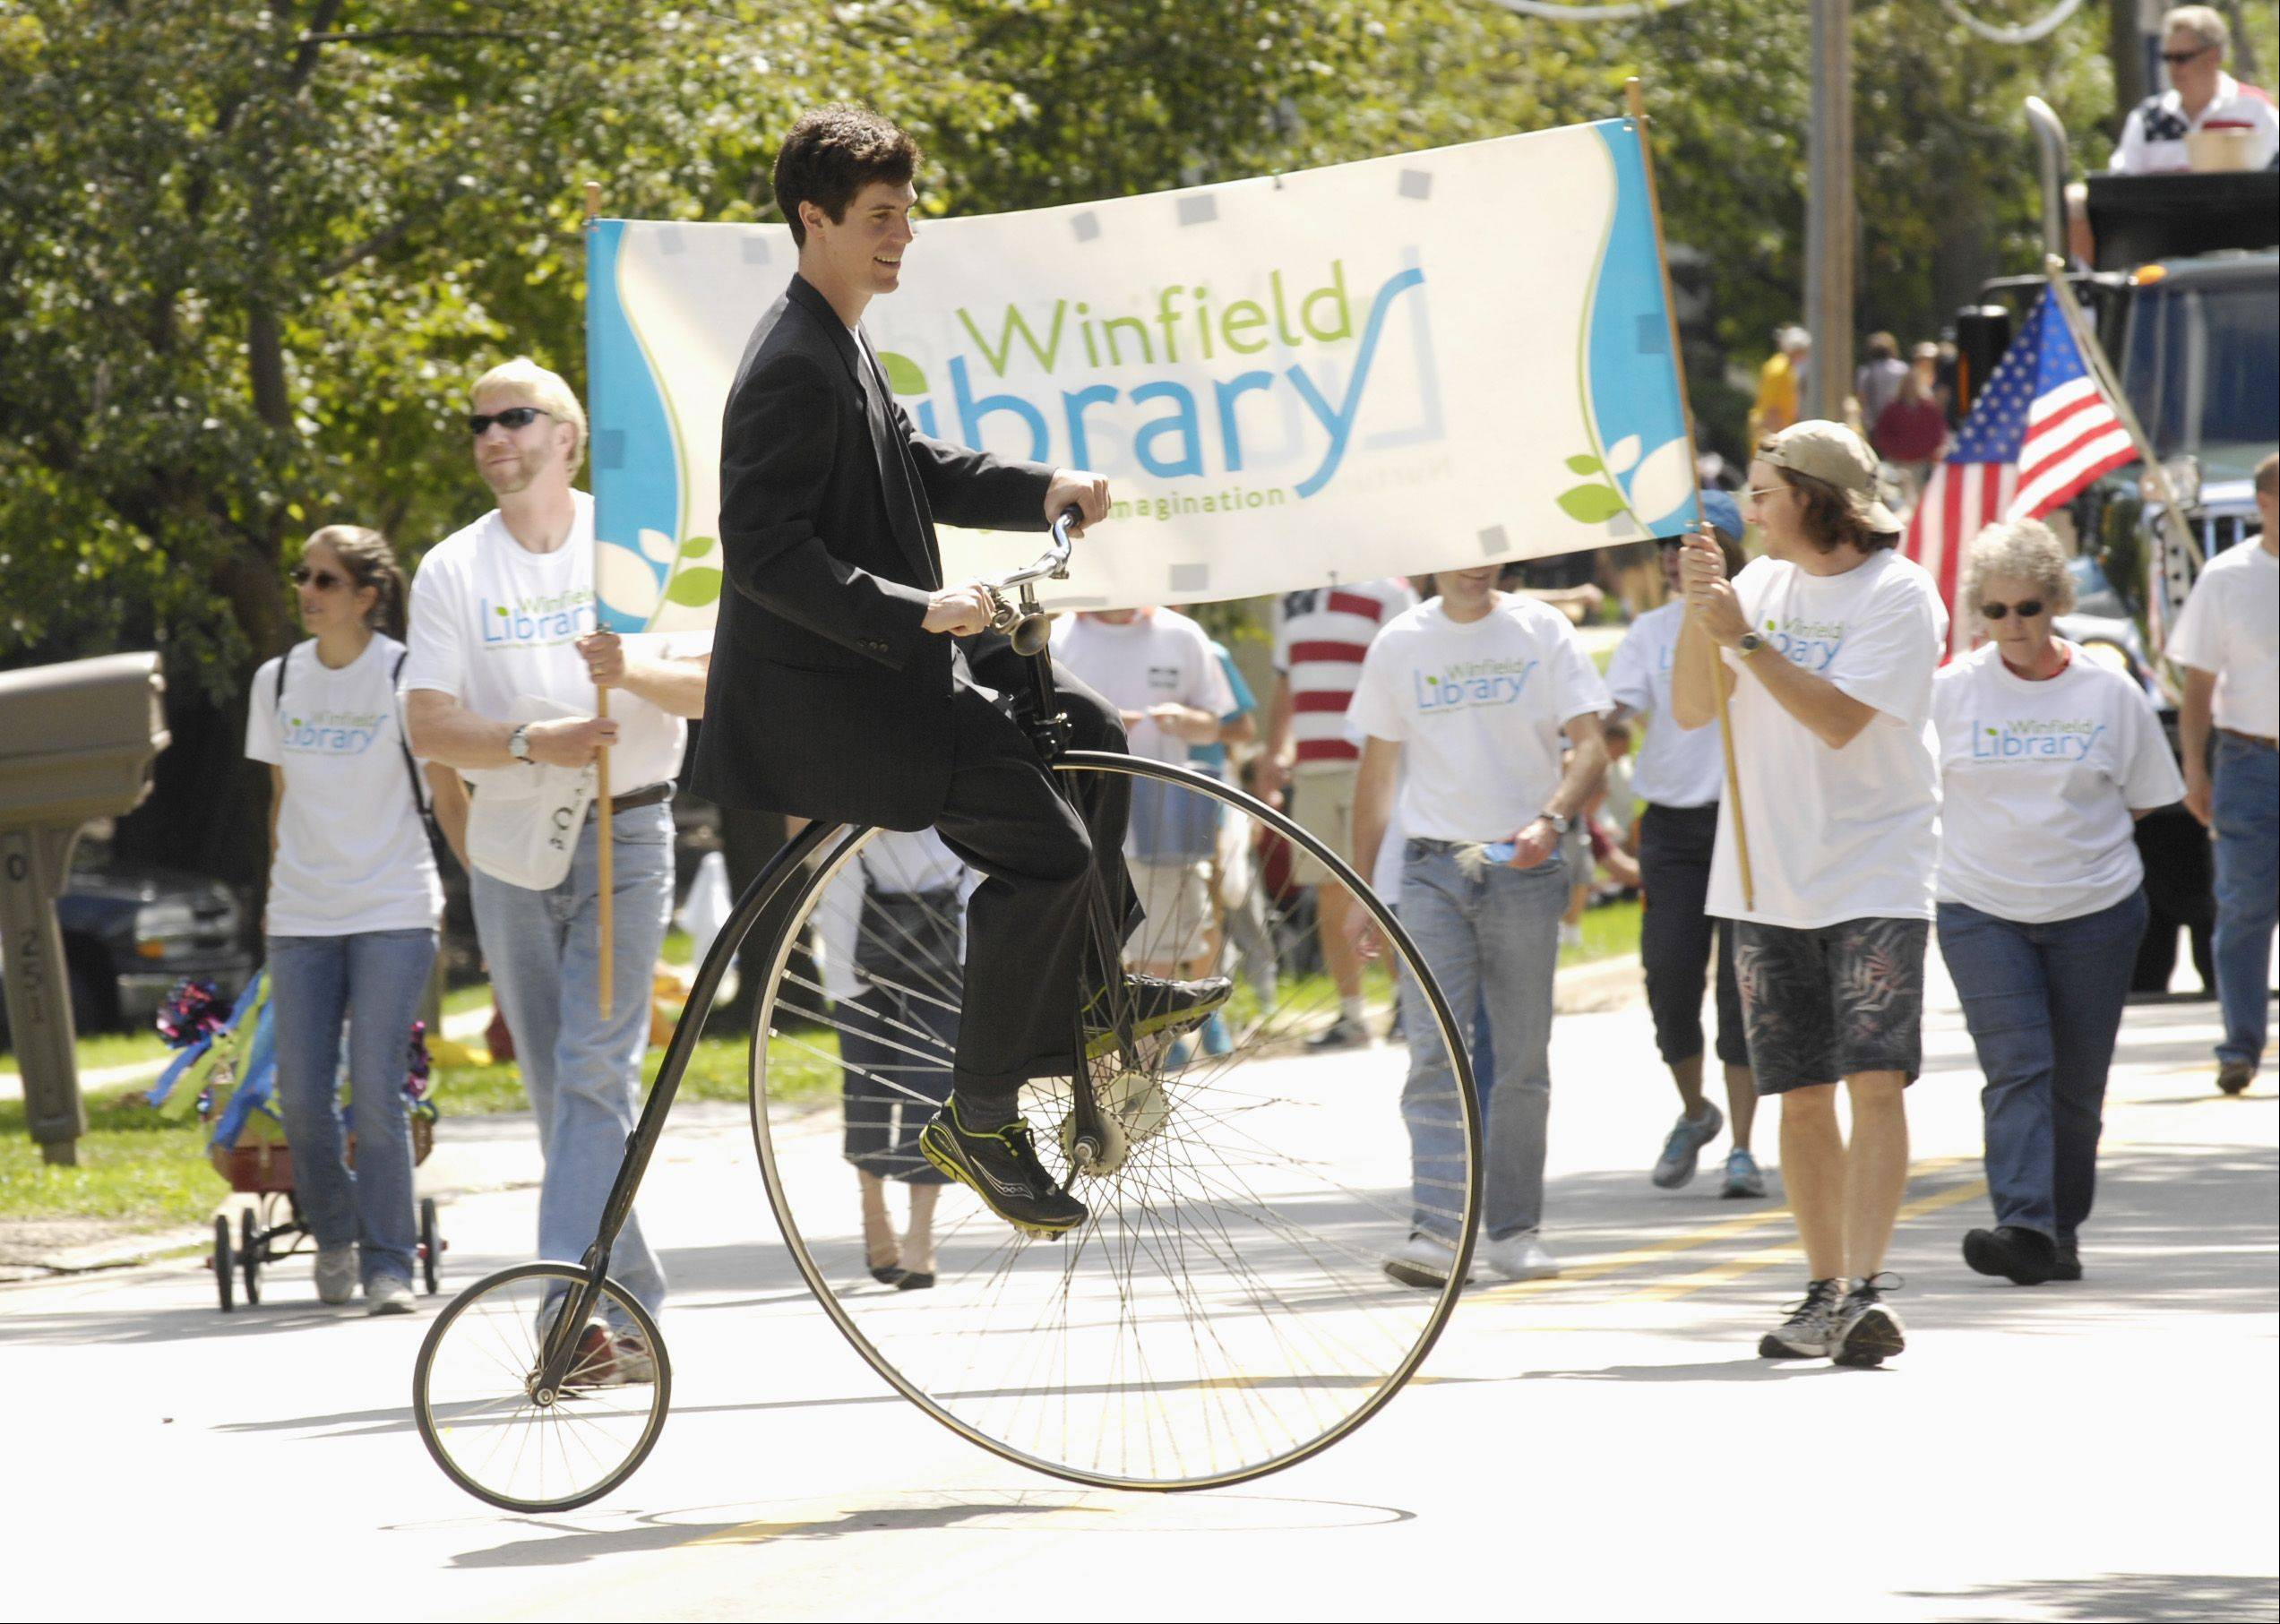 Brendan Wischweh, a teacher in Naperville, rides his big wheel bike with the Winfield Library group marching in Winfield's Good Old Day festival parade Sunday.